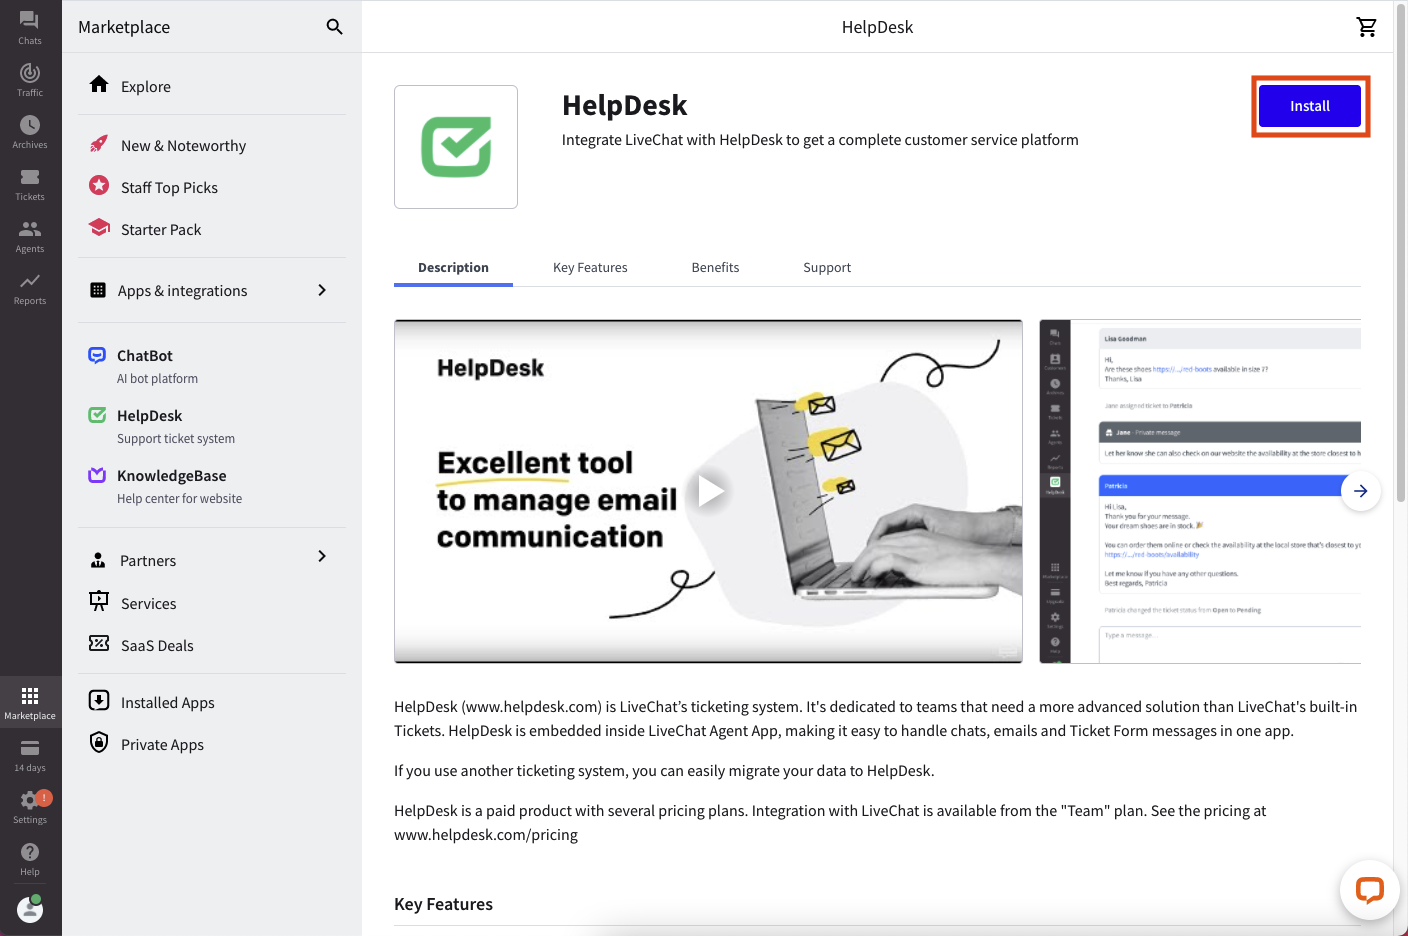 Installing HelpDesk in the LiveChat marketplace.